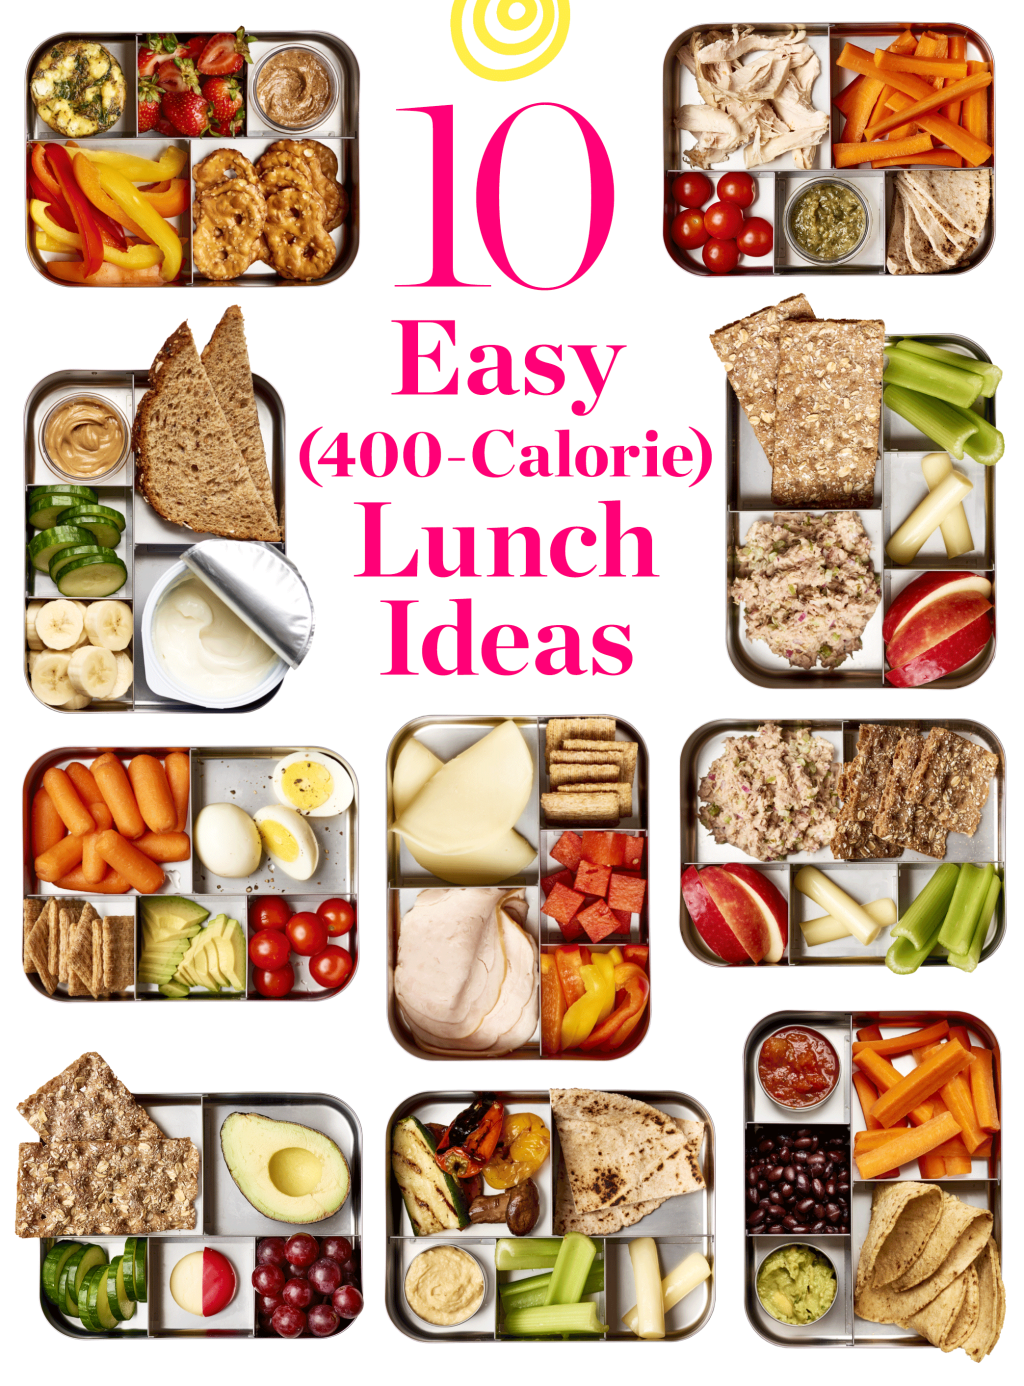 10 easy lunch ideas under 400 calories | kitchn